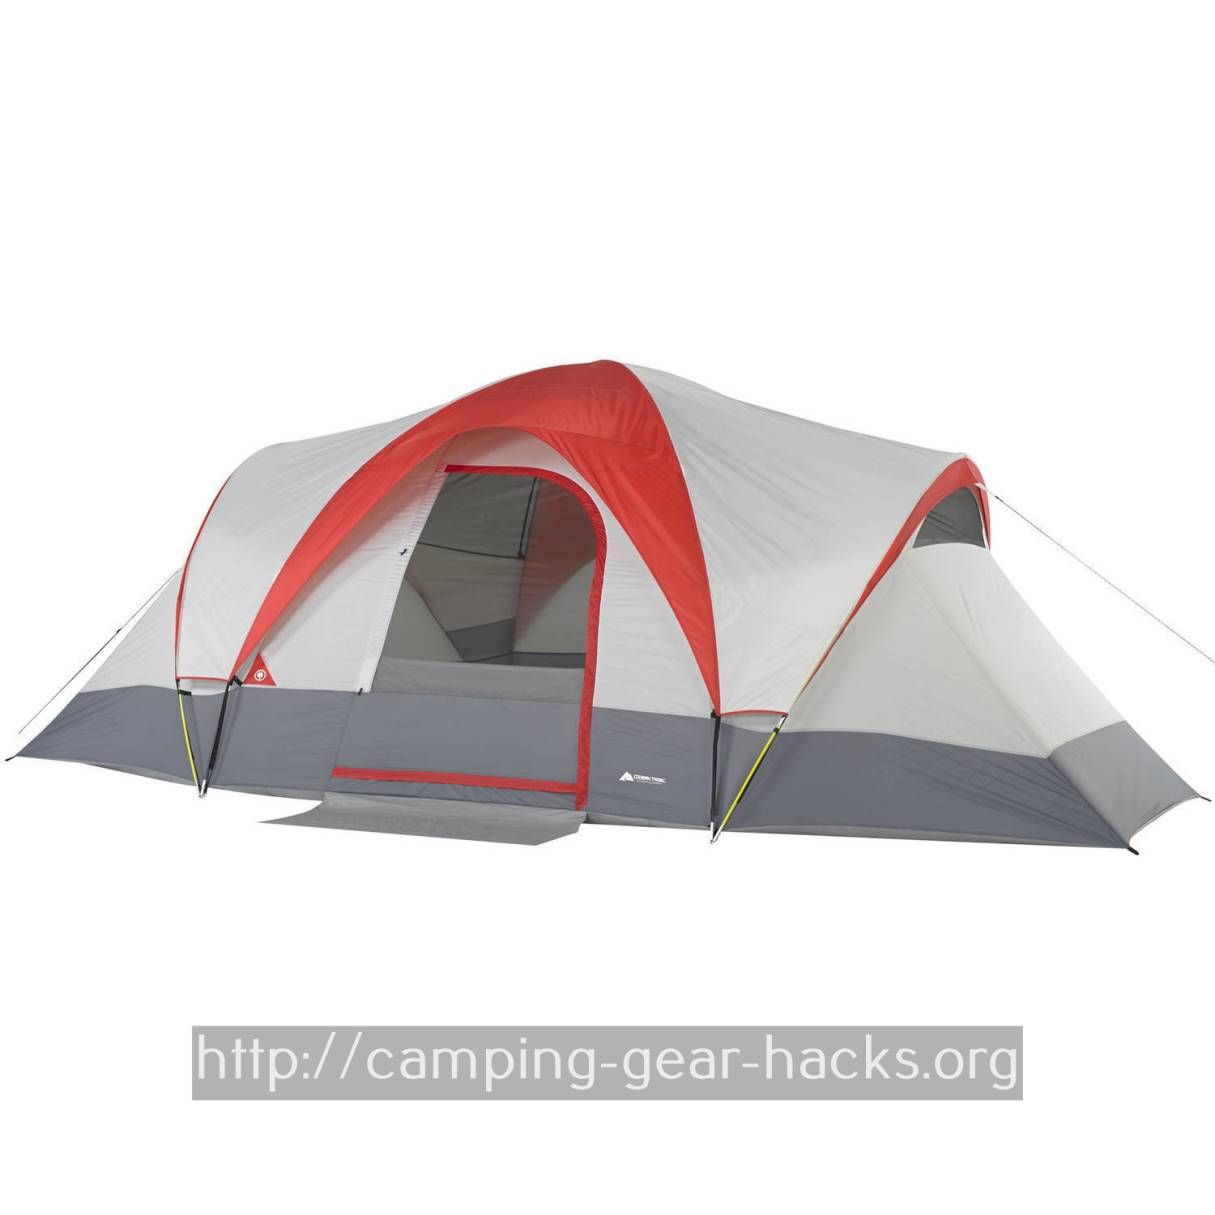 Camping packing website camping shower peoplemping hammock tent